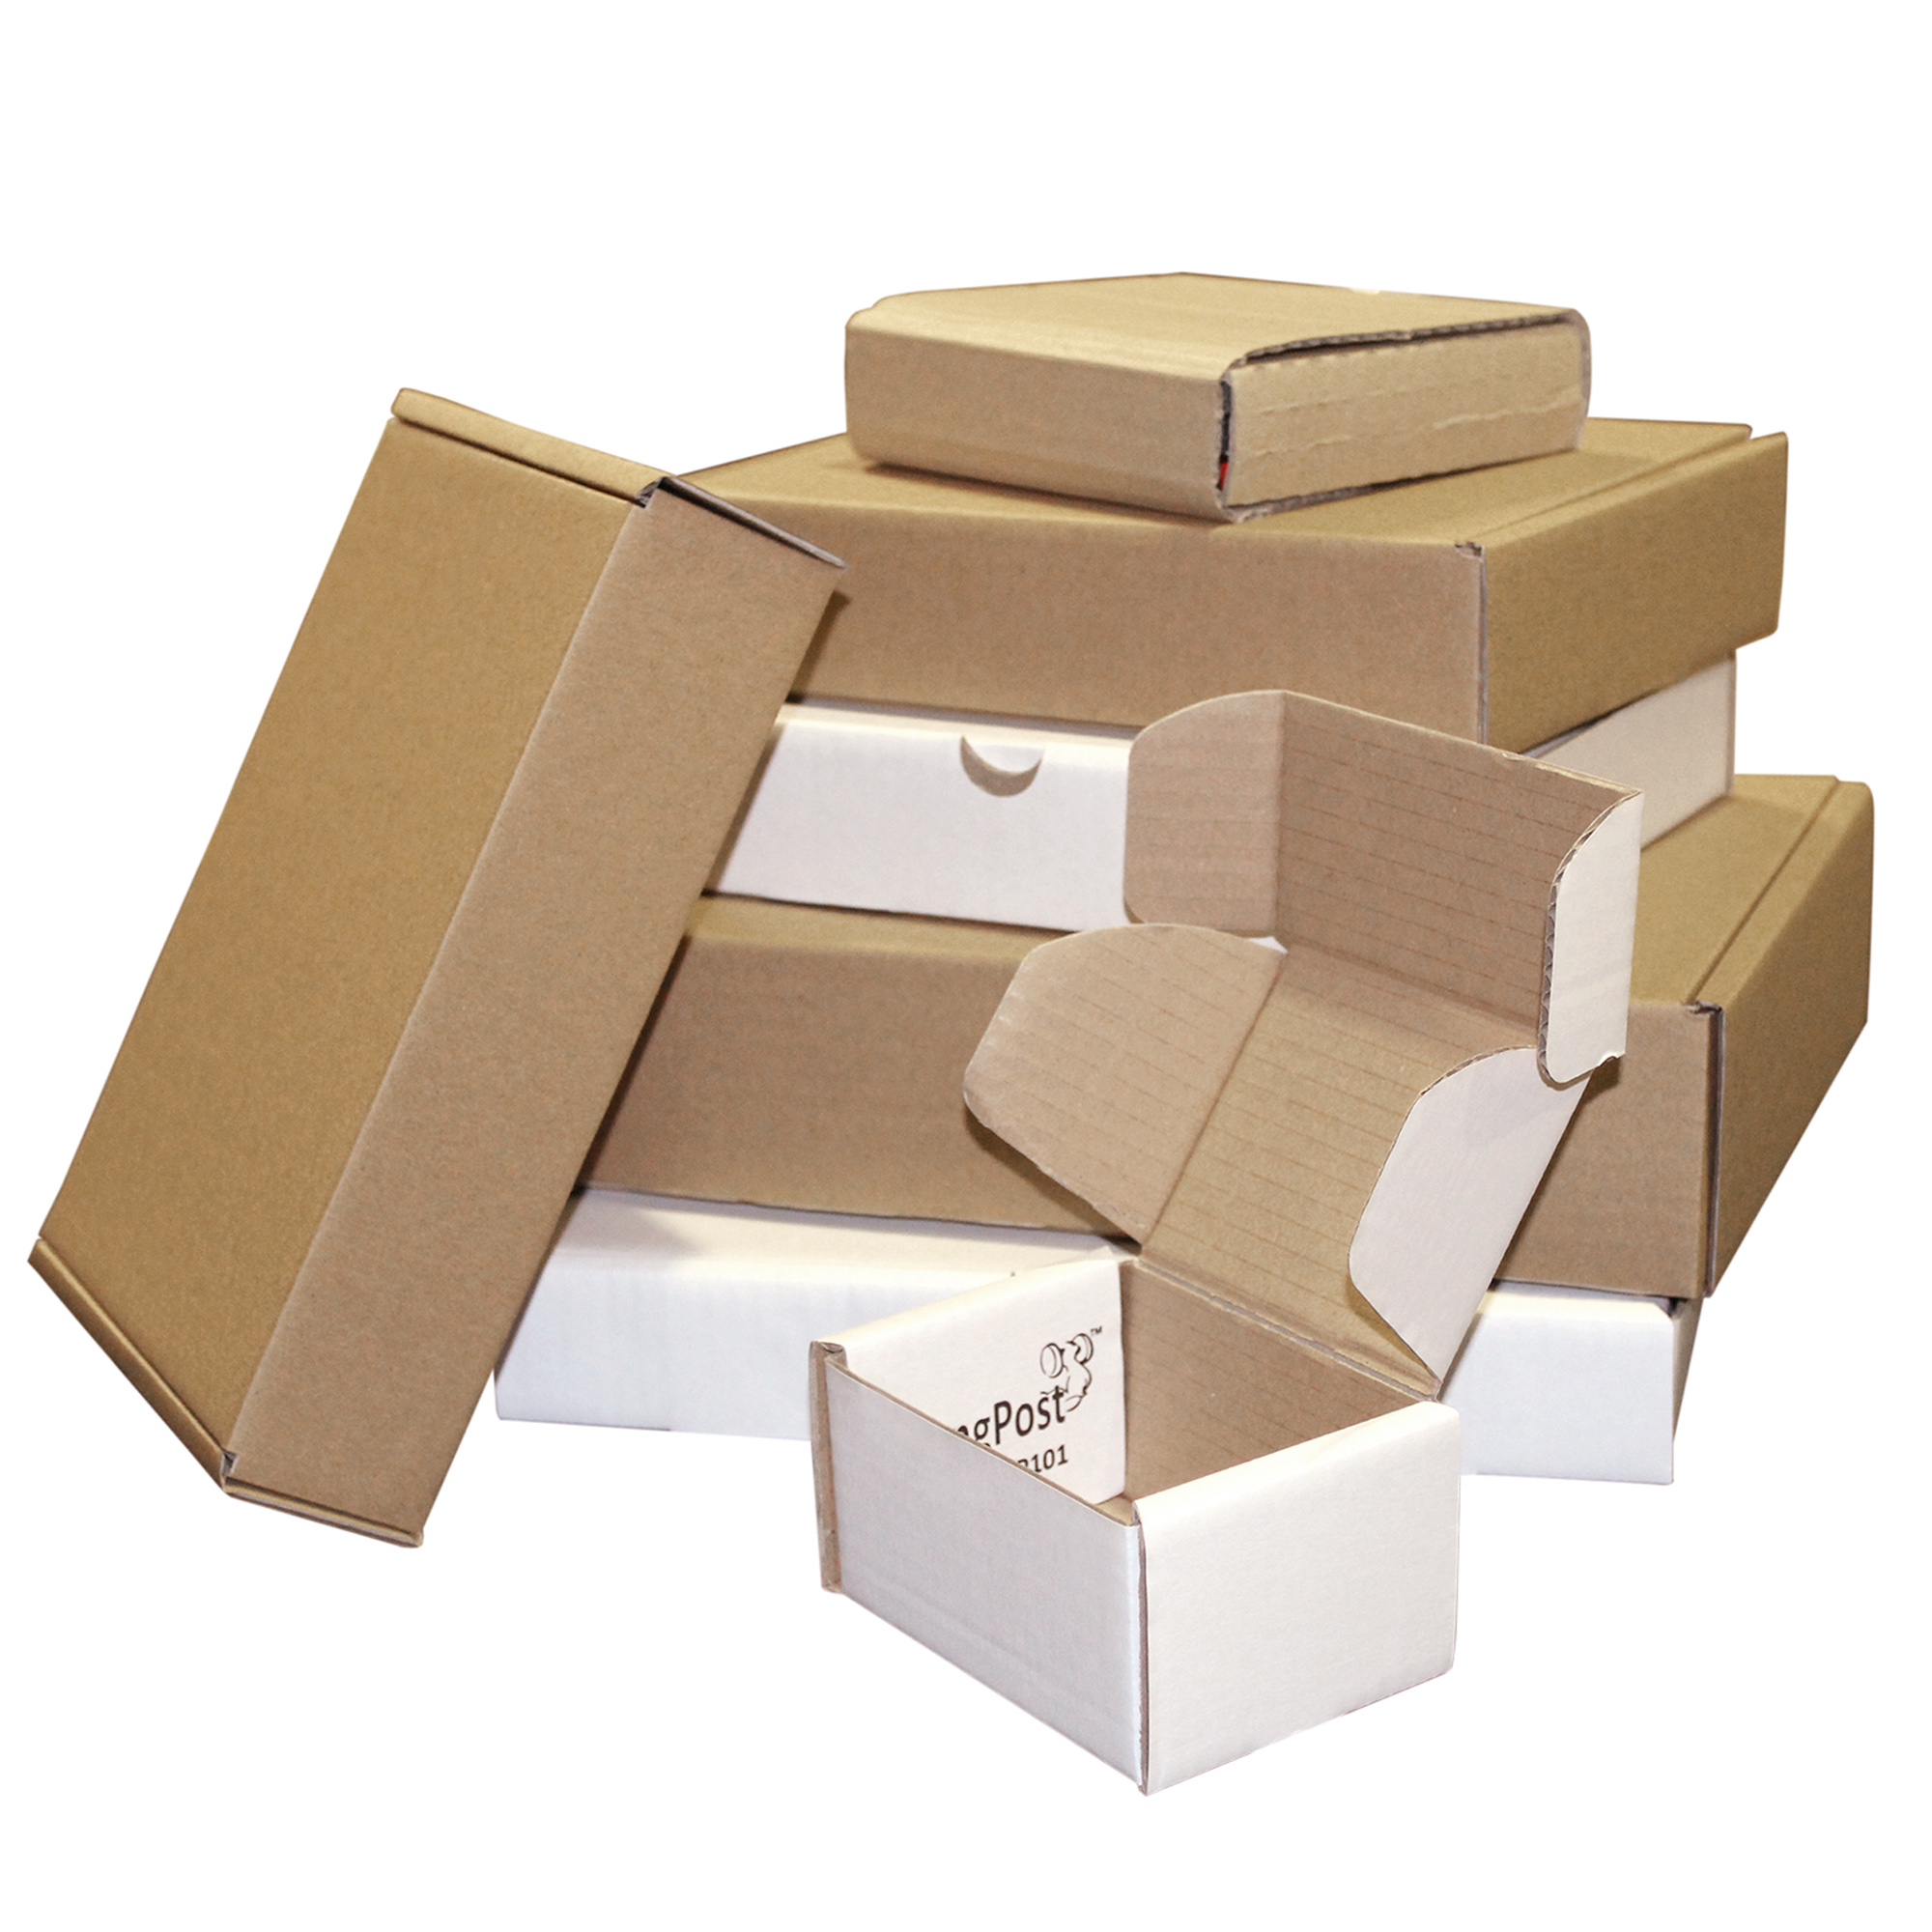 die cut cartons